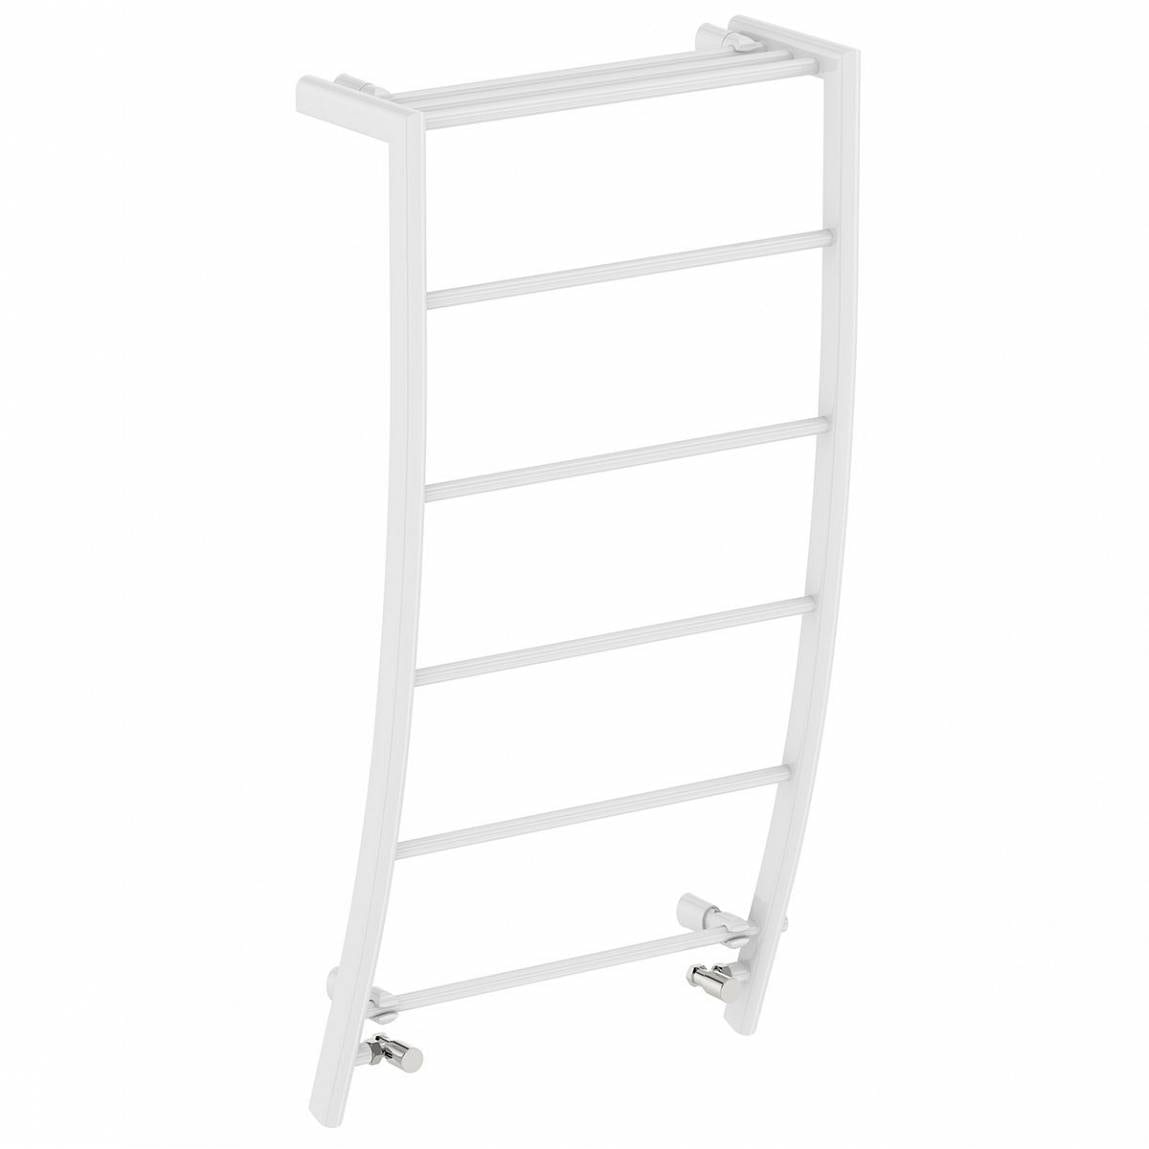 Clarity White curved heated towel rail 1200 x 600